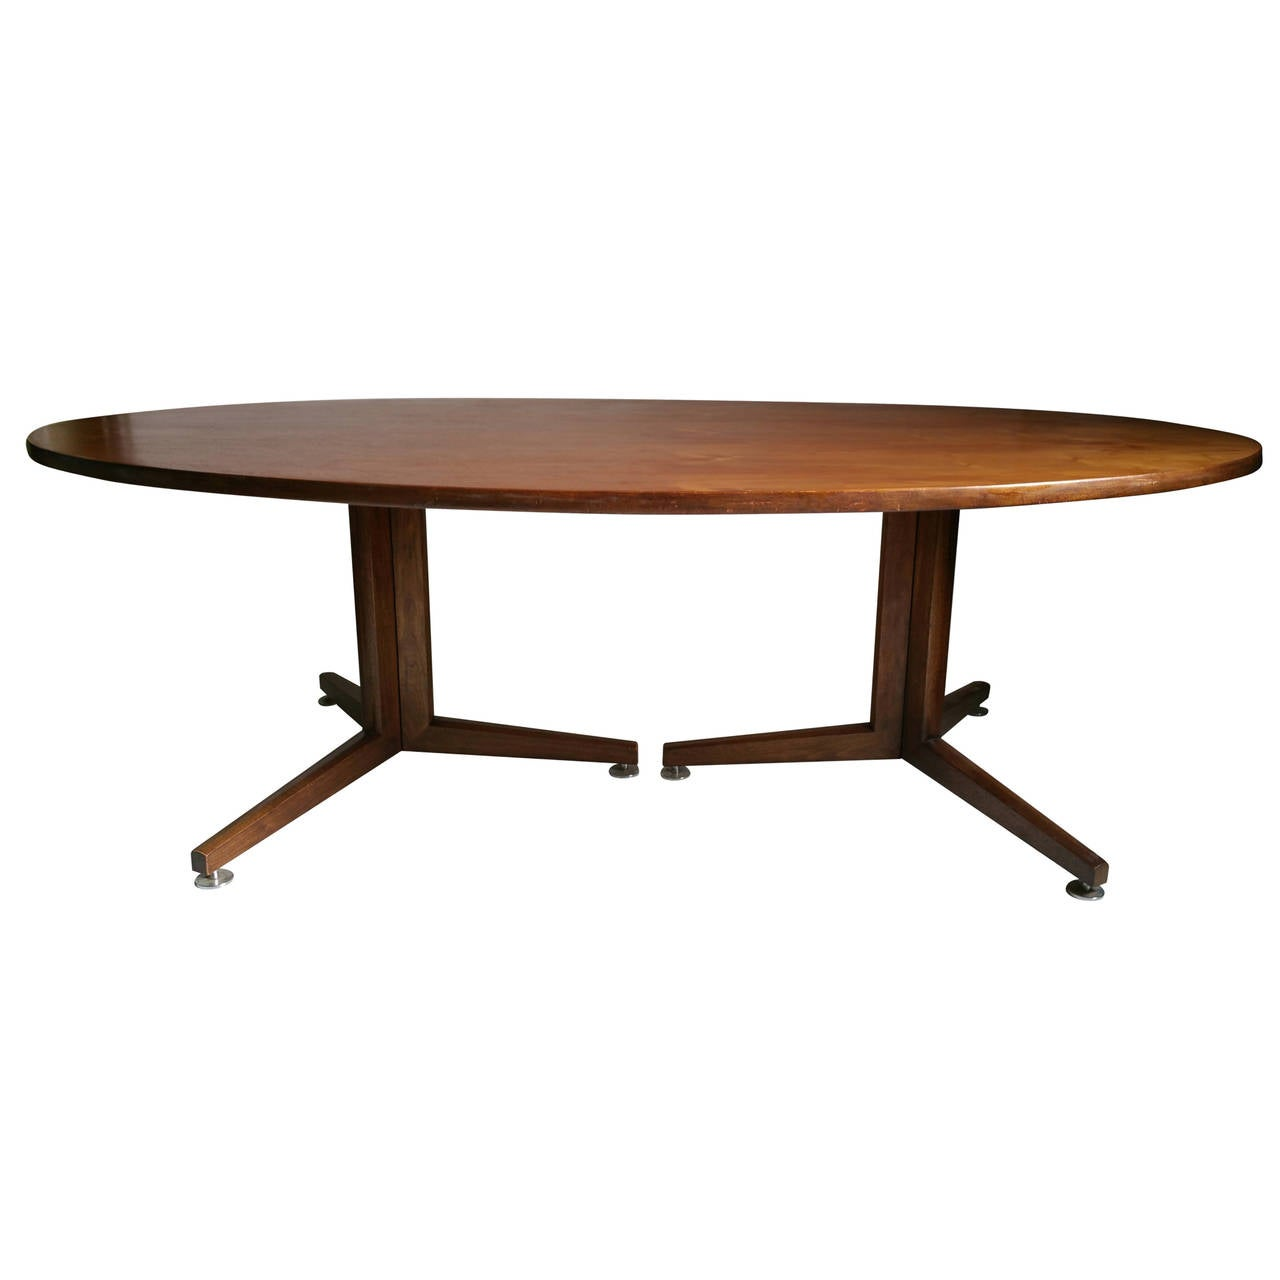 Dining or Conference Table by Edward Wormley for Dunbar